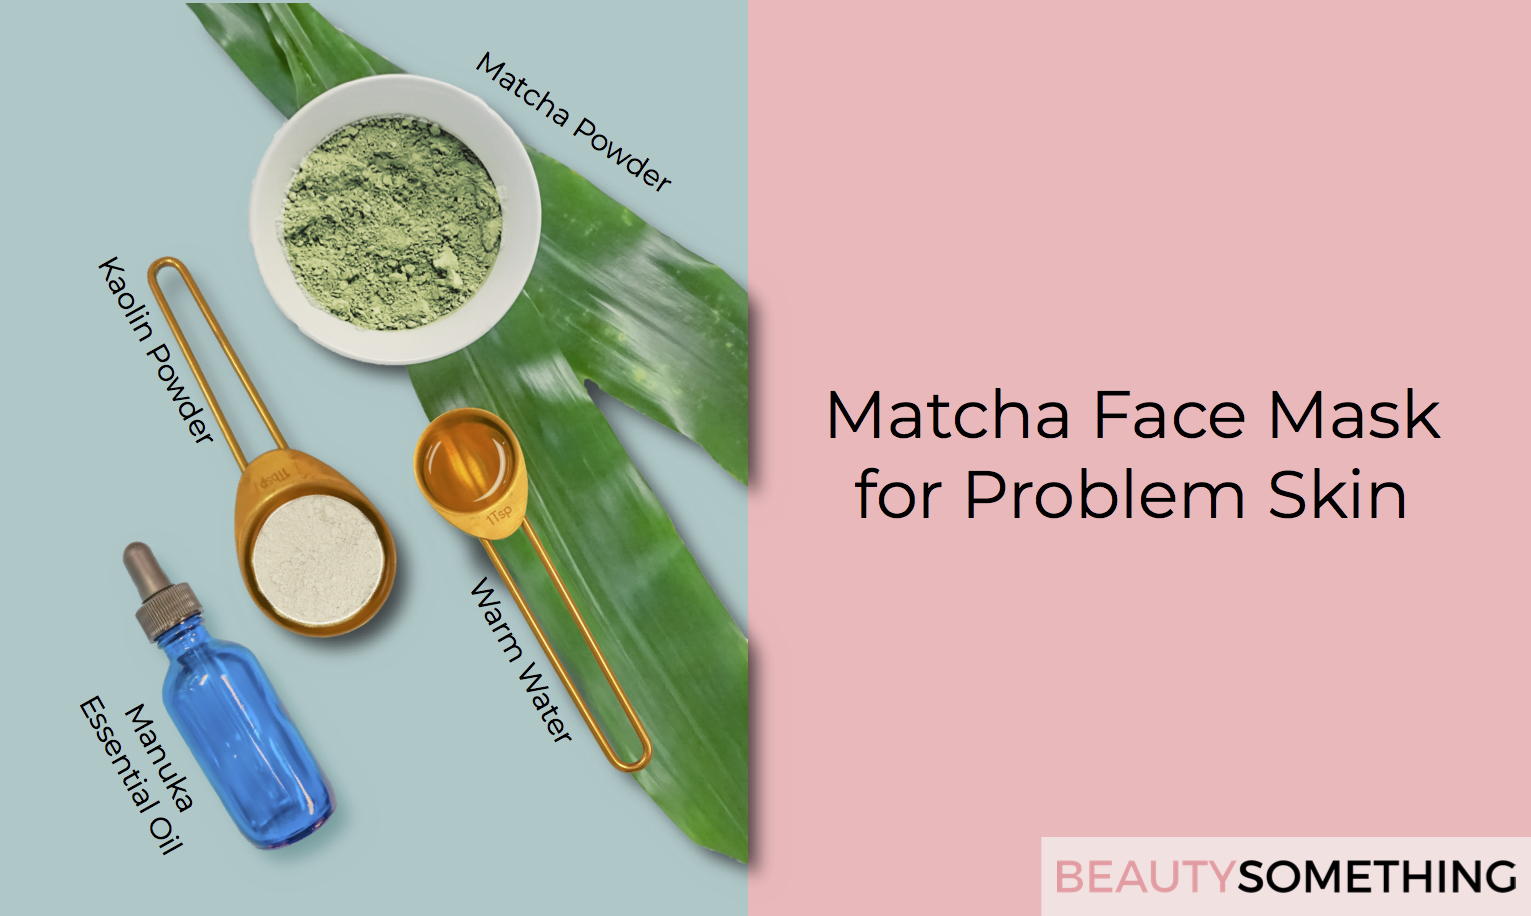 matcha green tea face mask for problem skin and acne recipe